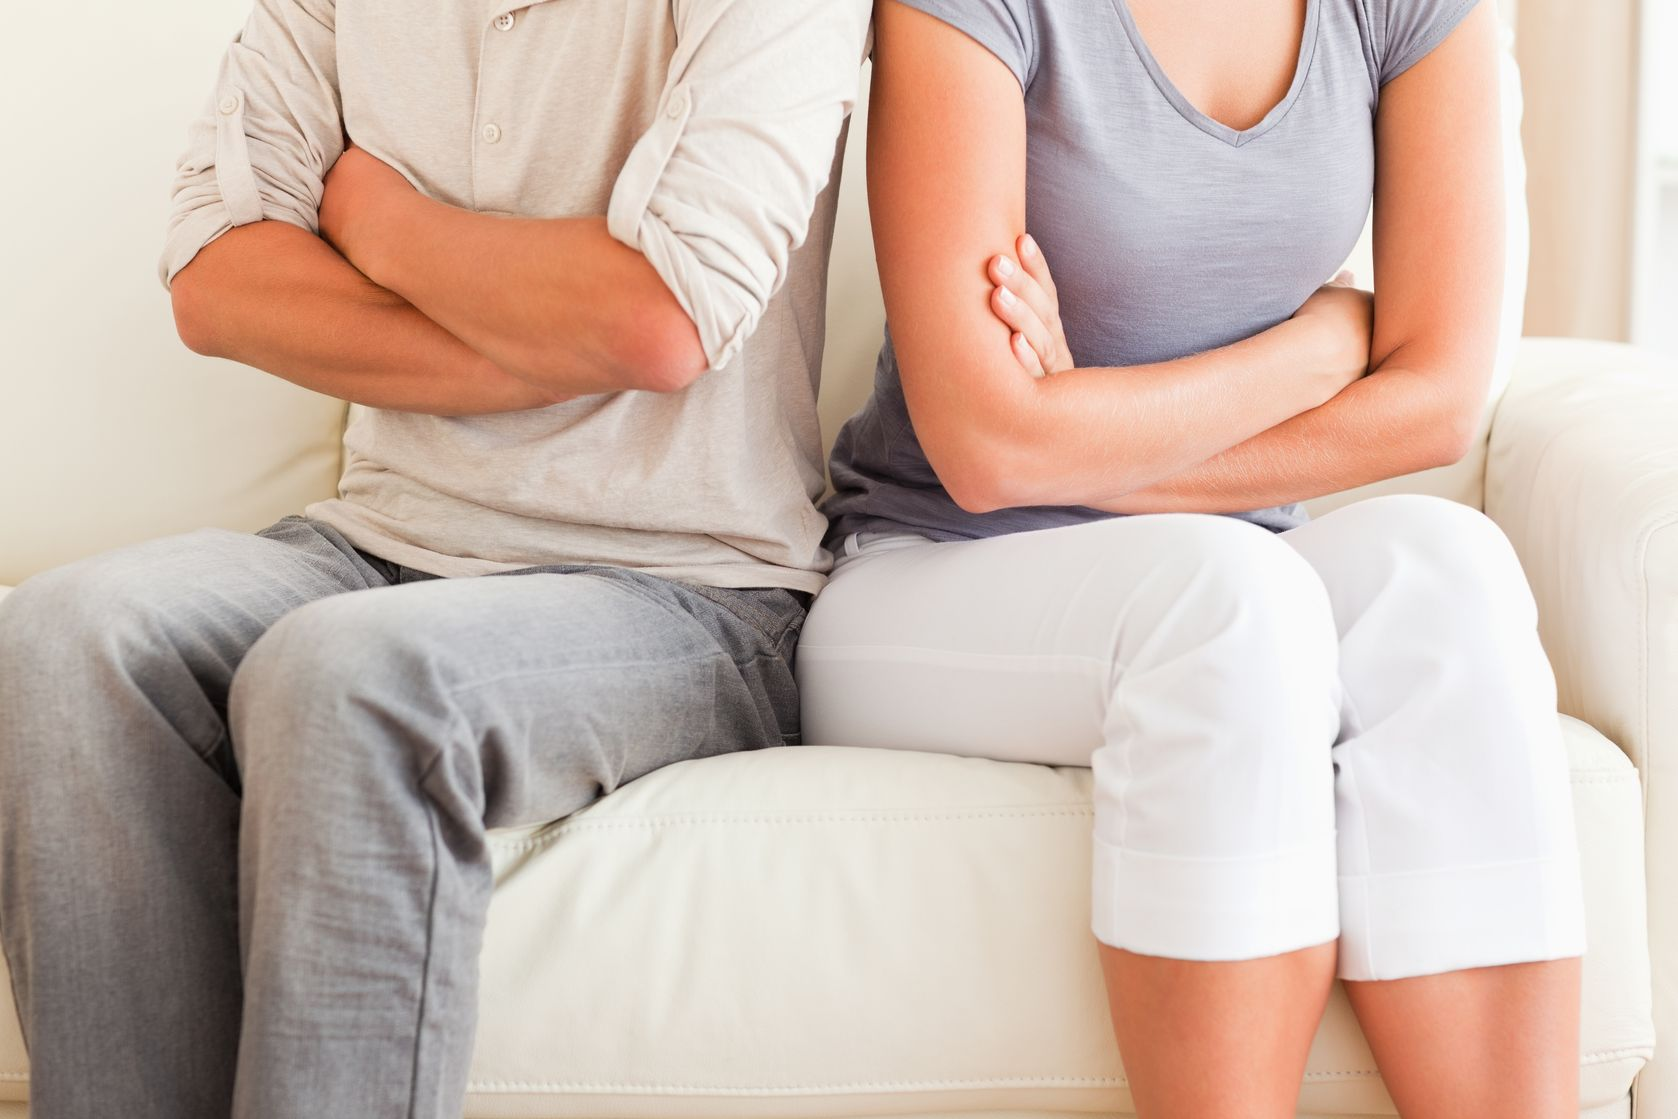 no like in sex women Couples-Counselling personal counseling individual at psychological counseling center velachery, chennai, tamilnadu